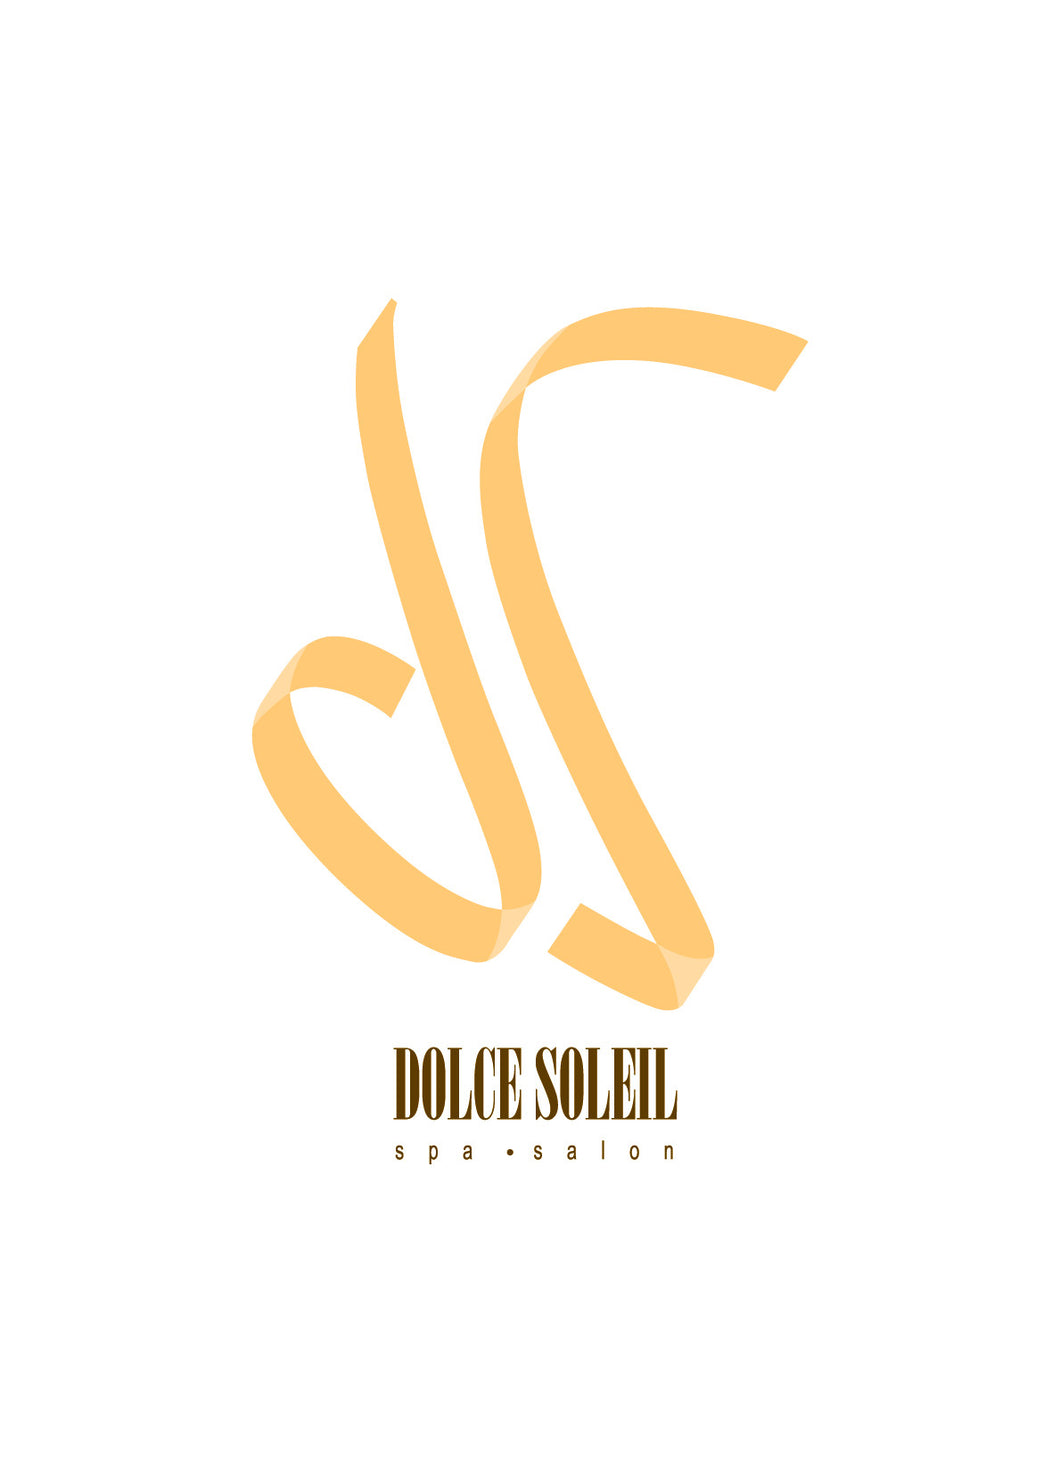 DOLCE SOLEIL GIFT CARD - $200